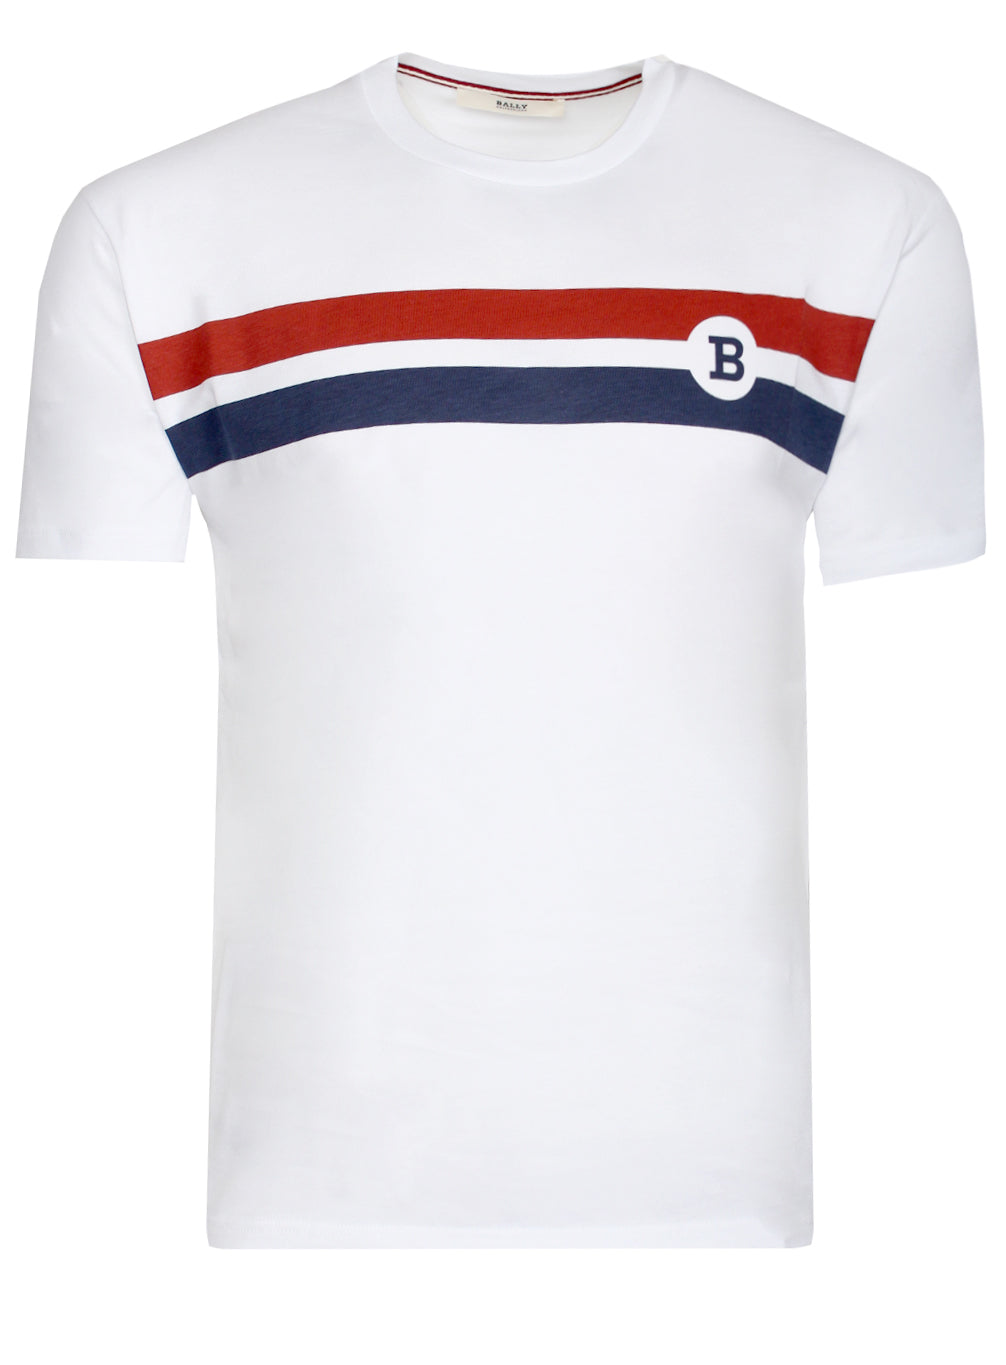 Bally Logo T-Shirt